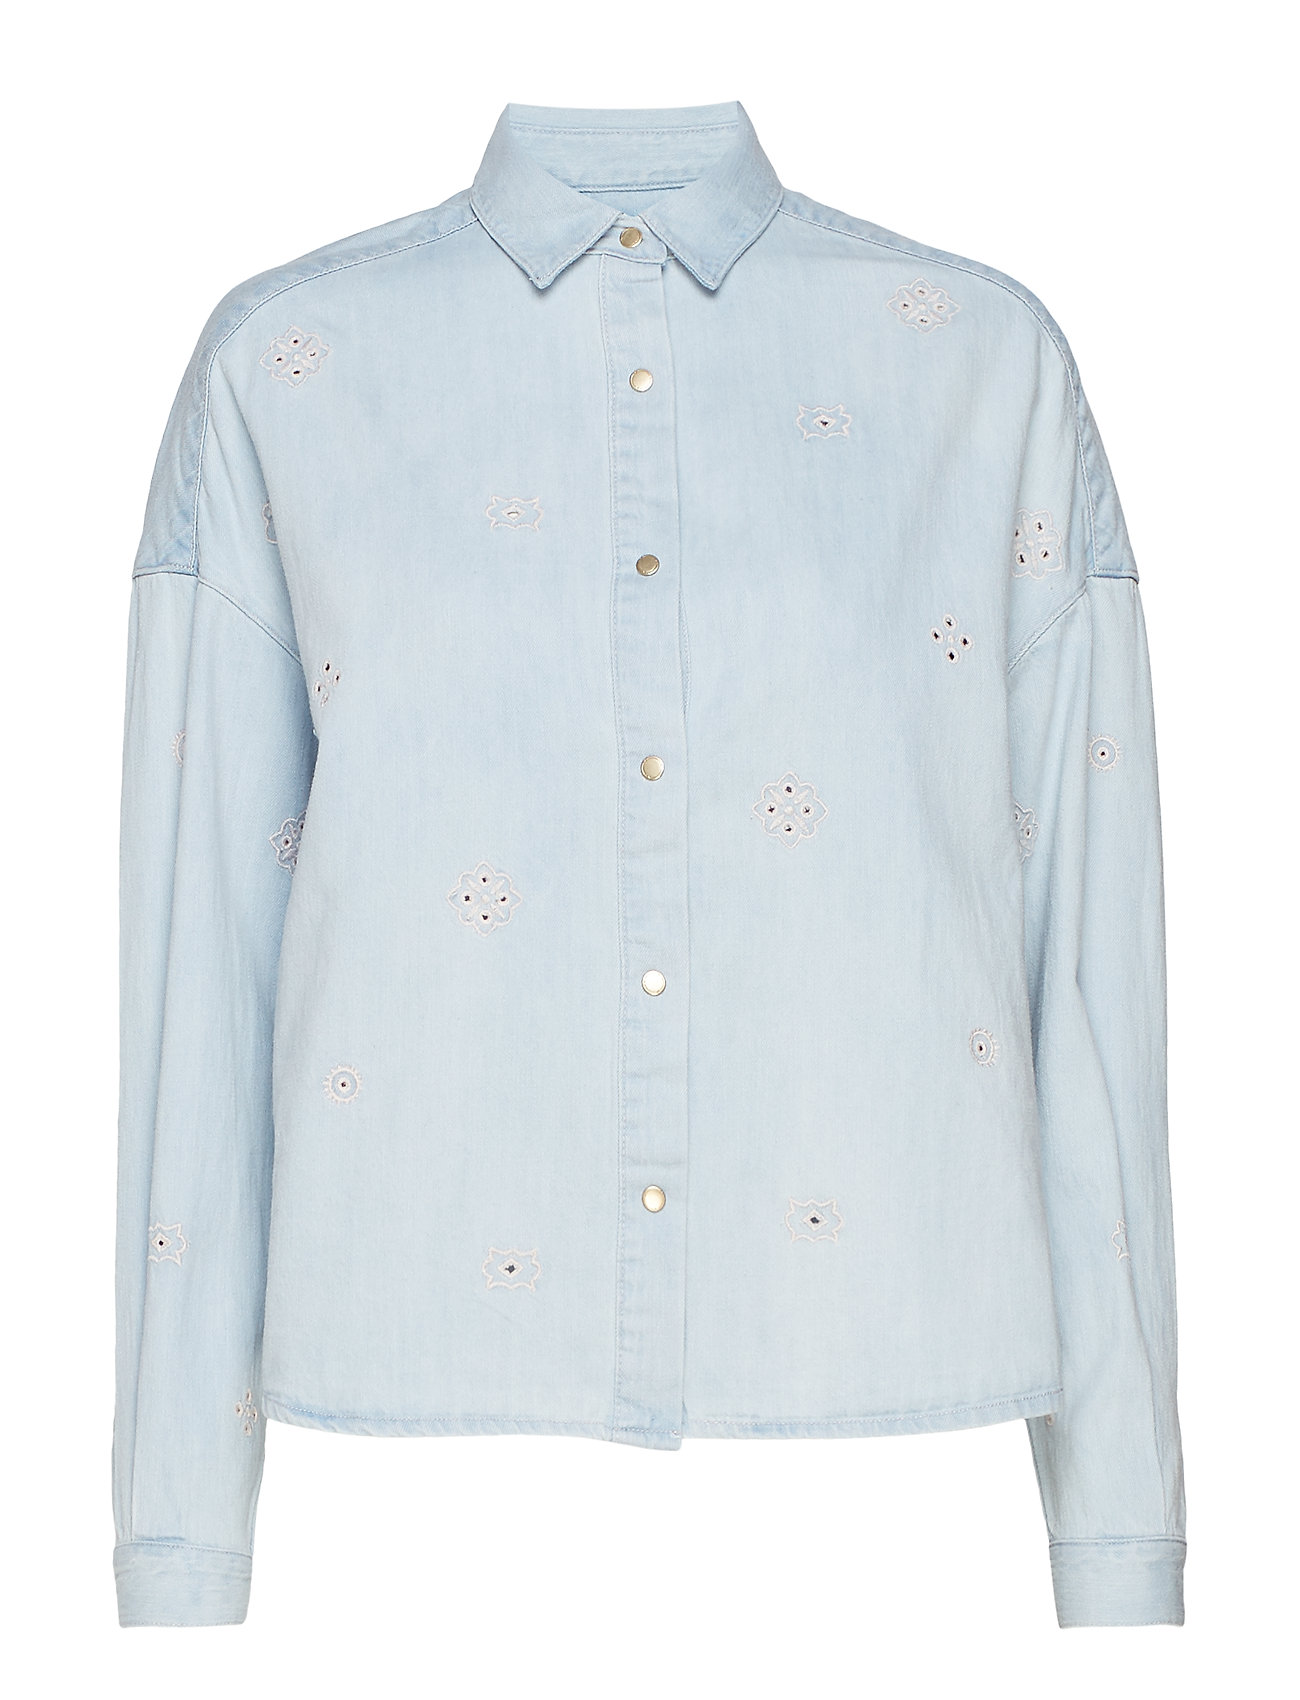 Scotch & Soda Boxy western shirt - INDIGO